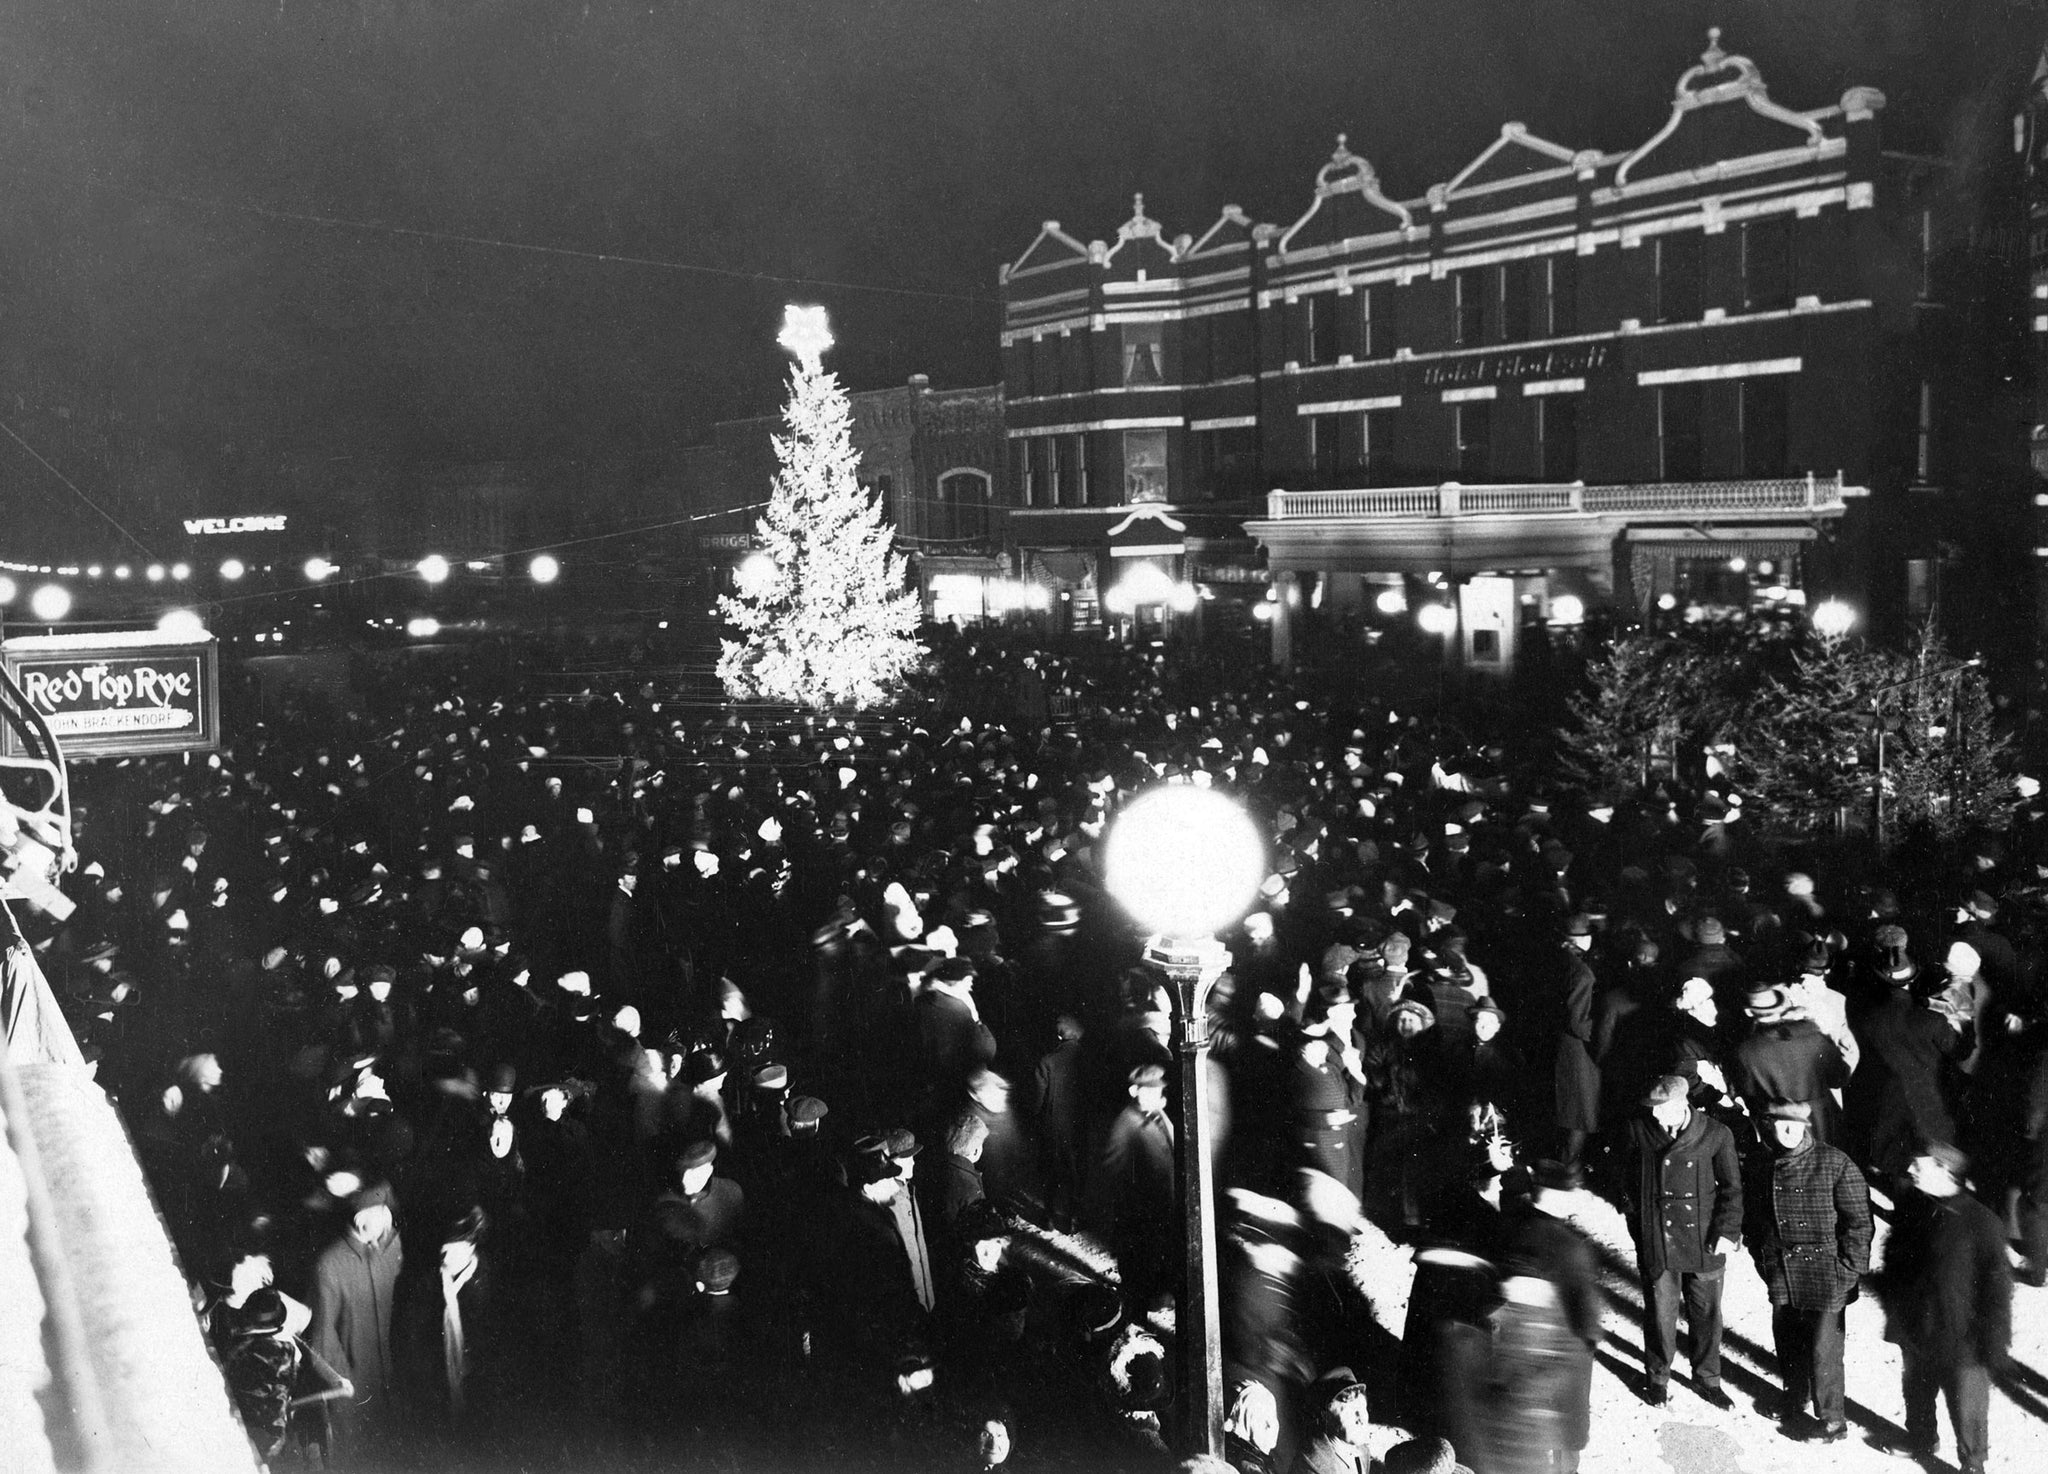 Community celebration draws thousands for lighting of the Eagles' First Community Christmas Tree, 1915. -- NORTH WOOD COUNTY HISTORICAL SOCIETY / #N108.16-2